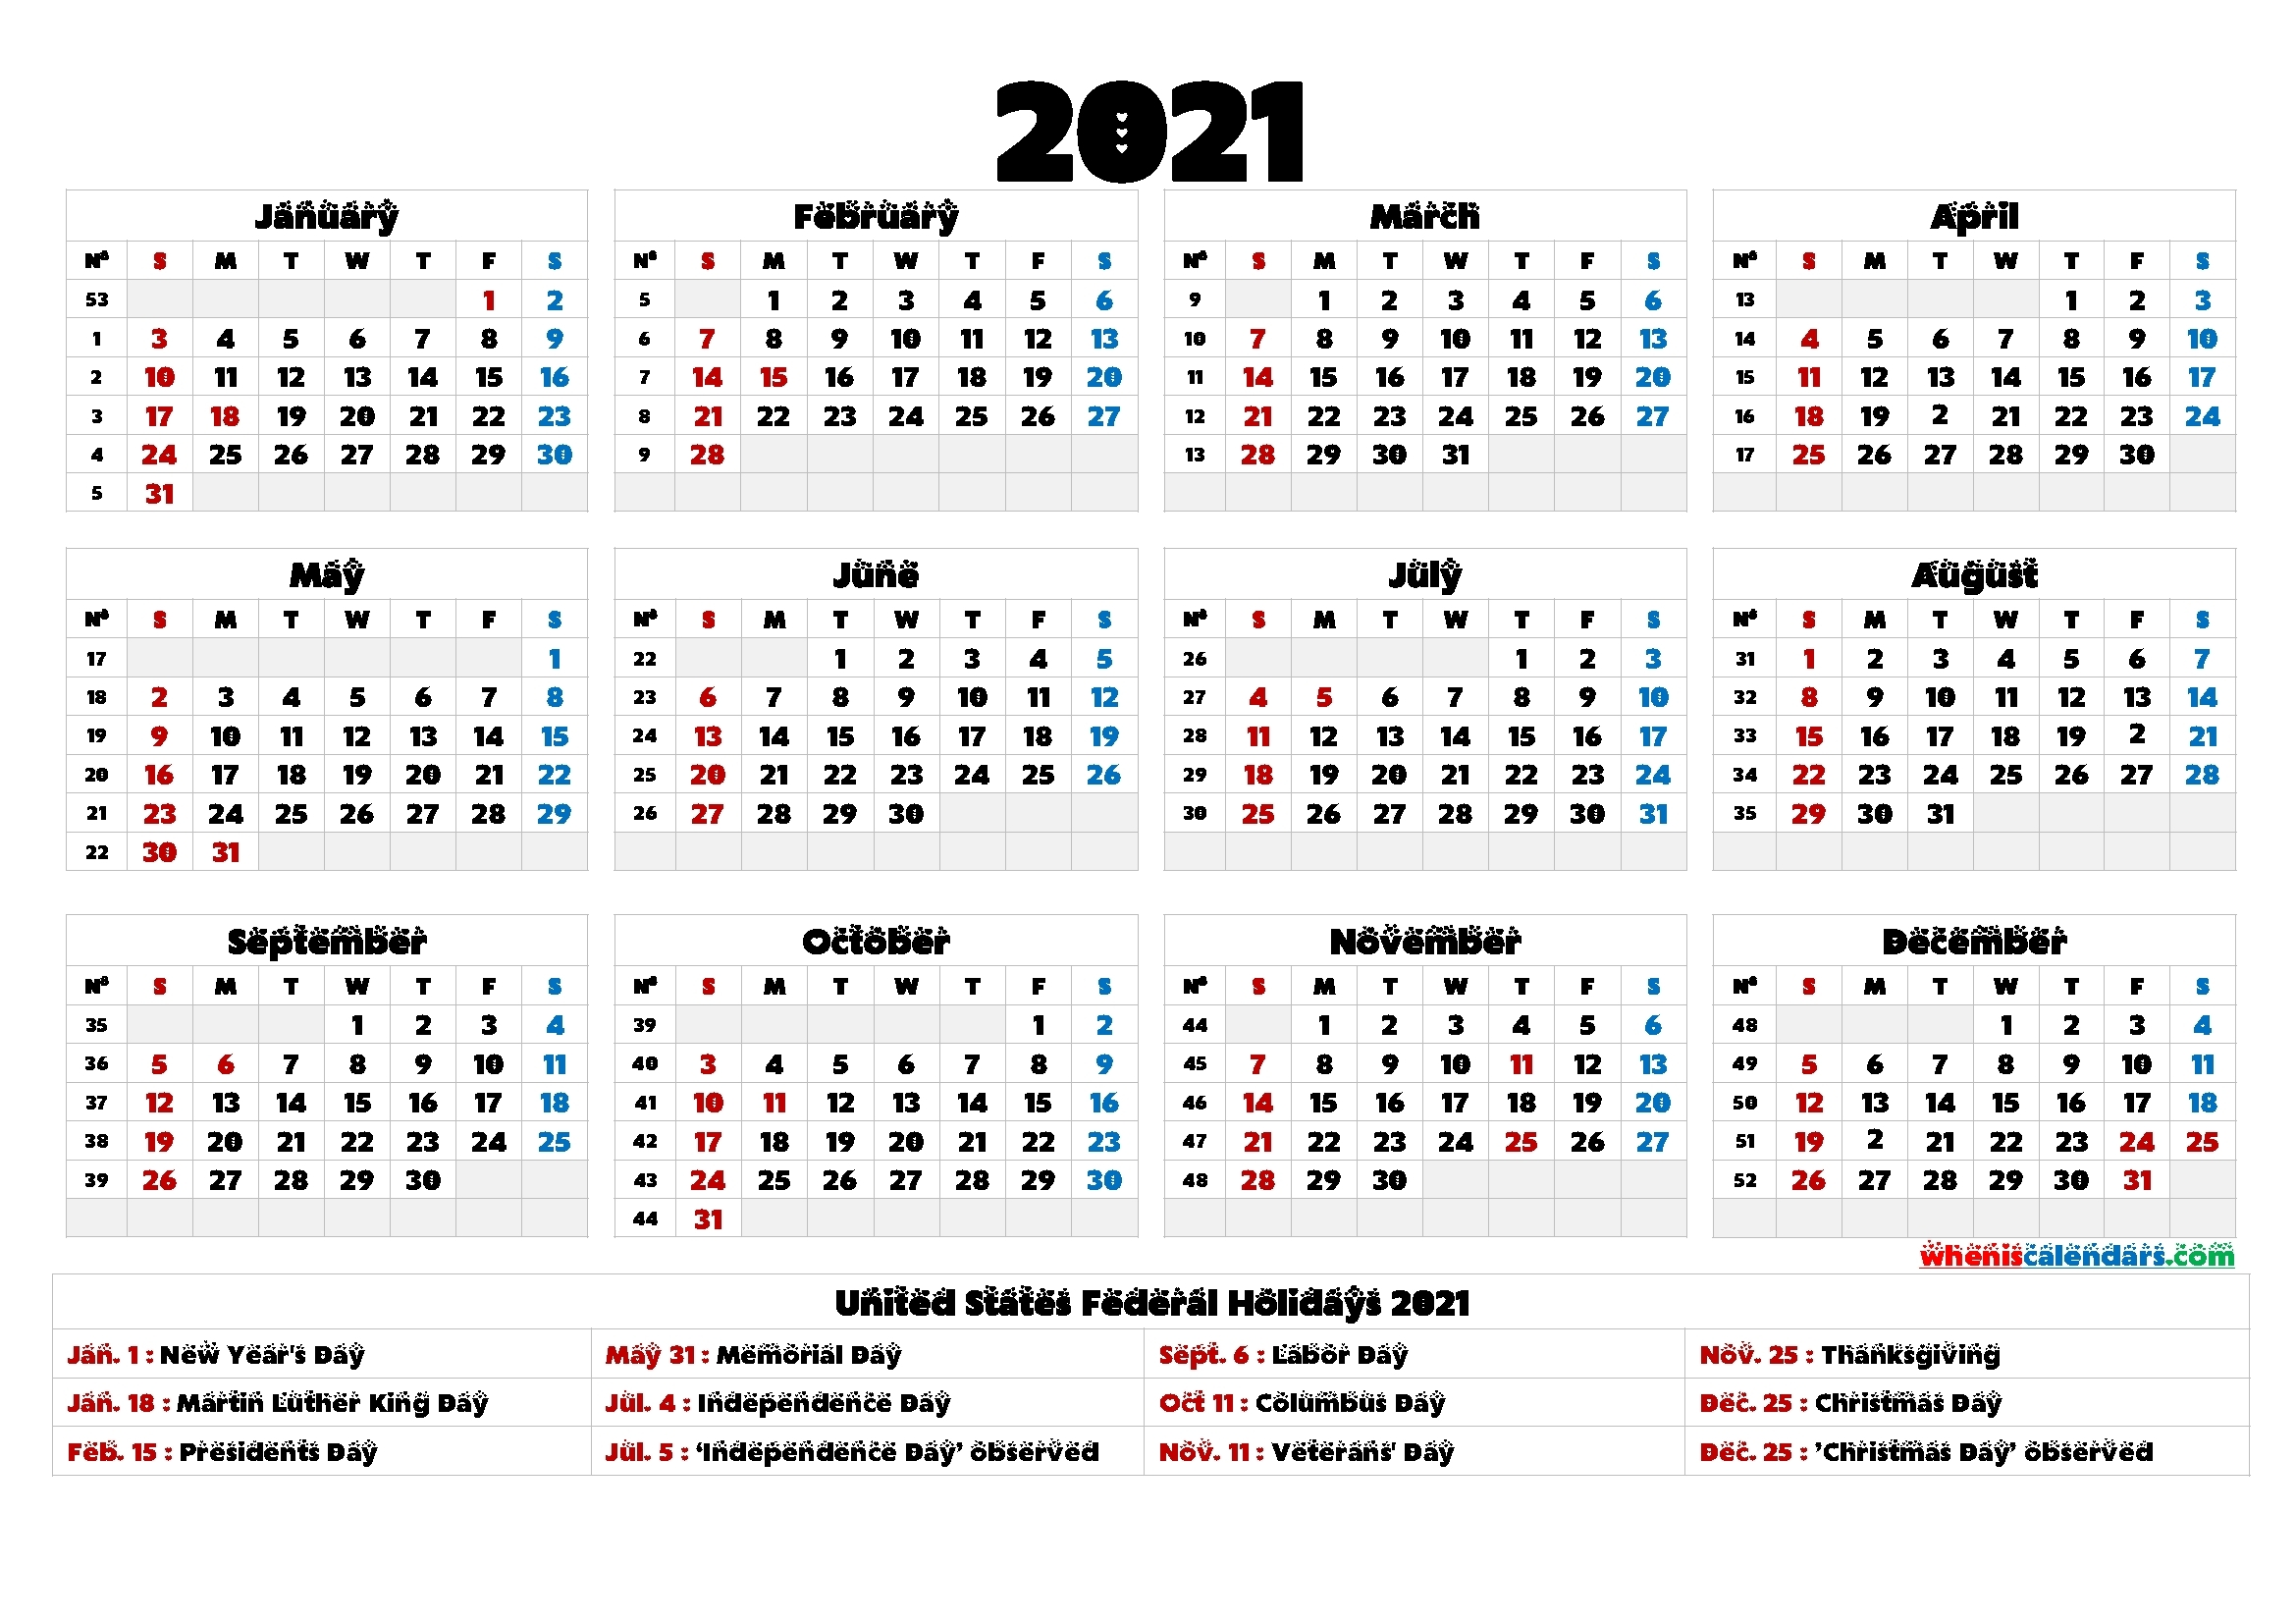 4Mmonth Calendar On One Page 2021 - Example Calendar Printable with 2021 Yearly Calendar Template Printable